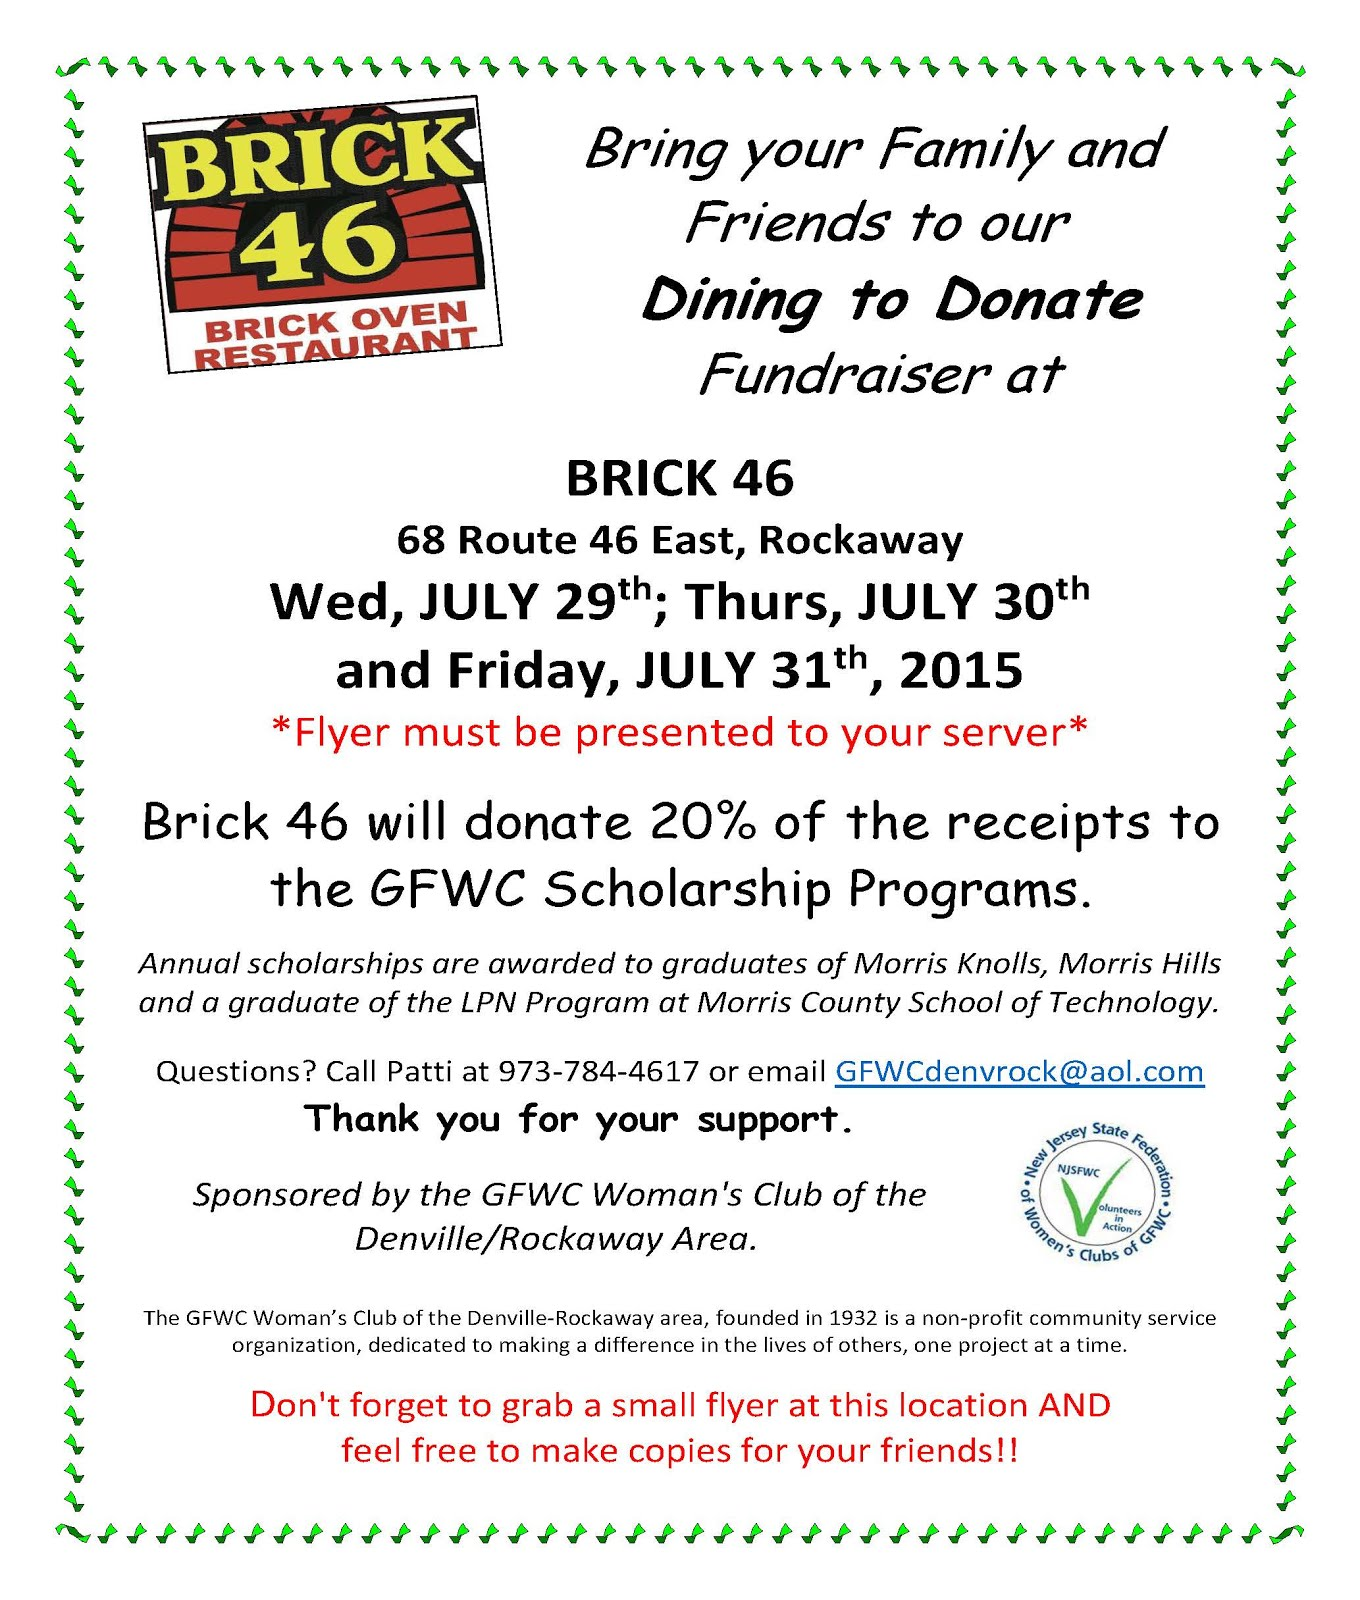 Dining to Donate at Brick 46